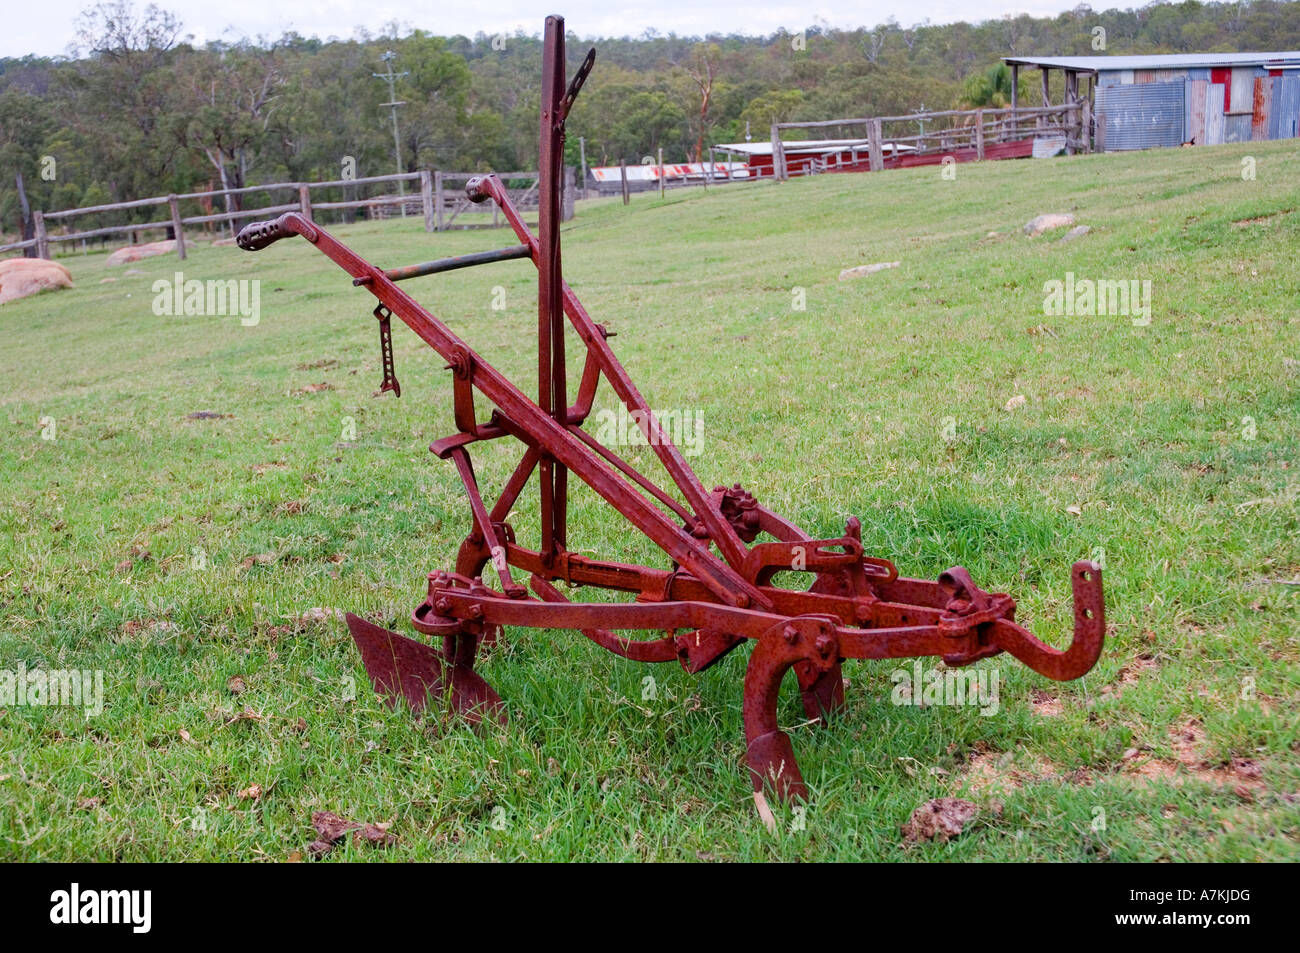 Old horse drawn plough - Stock Image